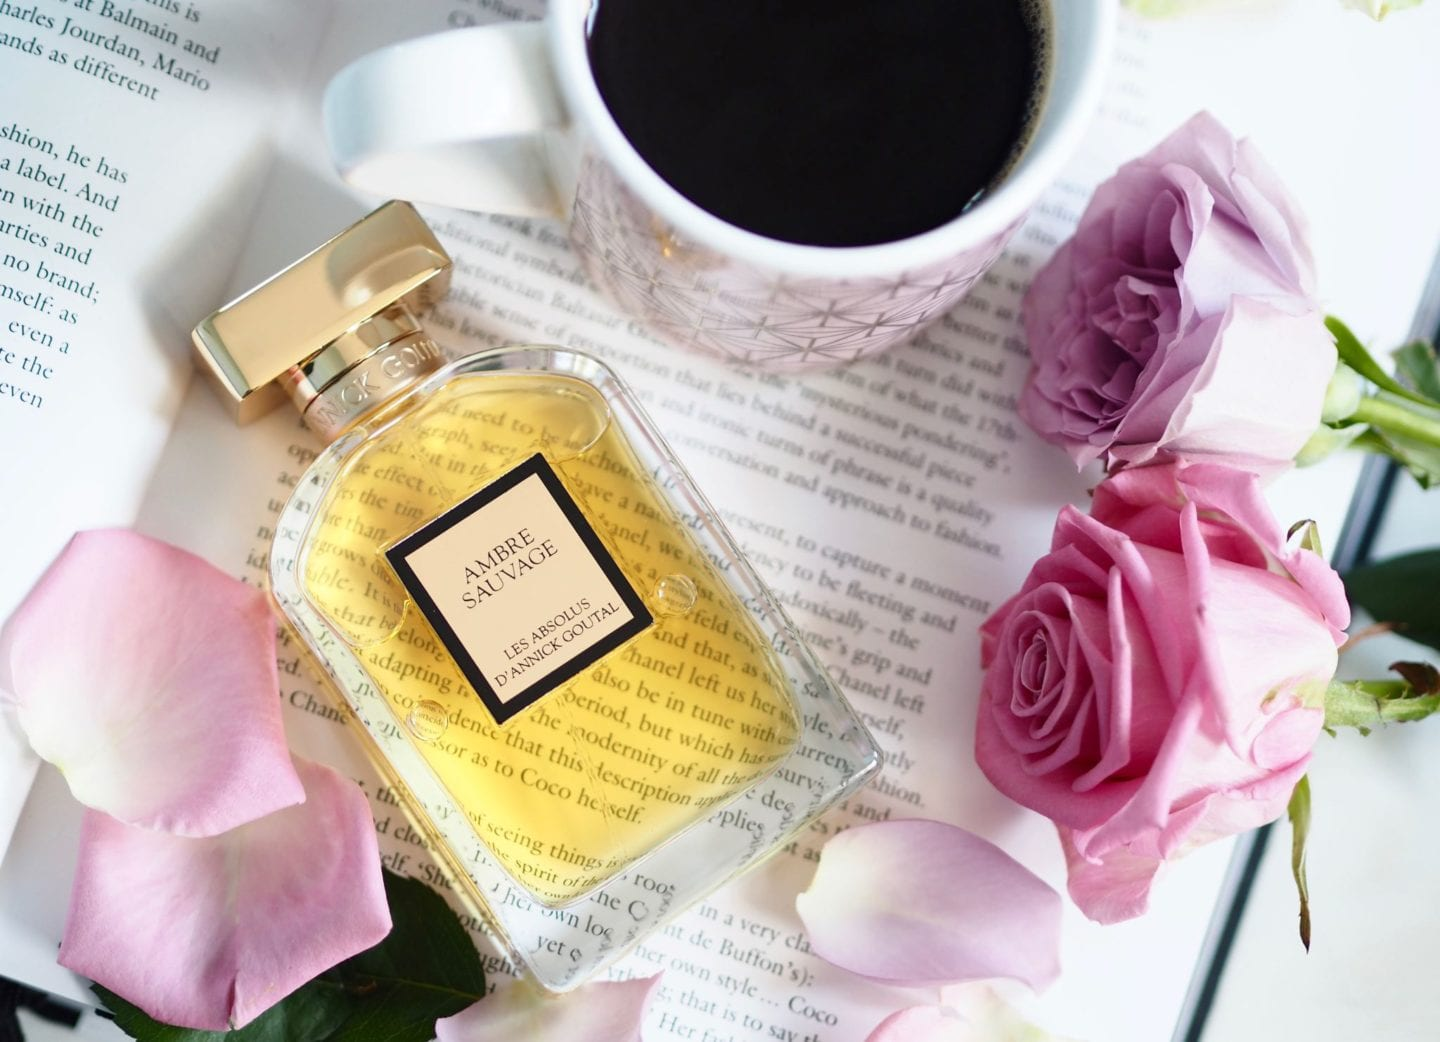 Annick-Goutal-Ambre-Sauvage